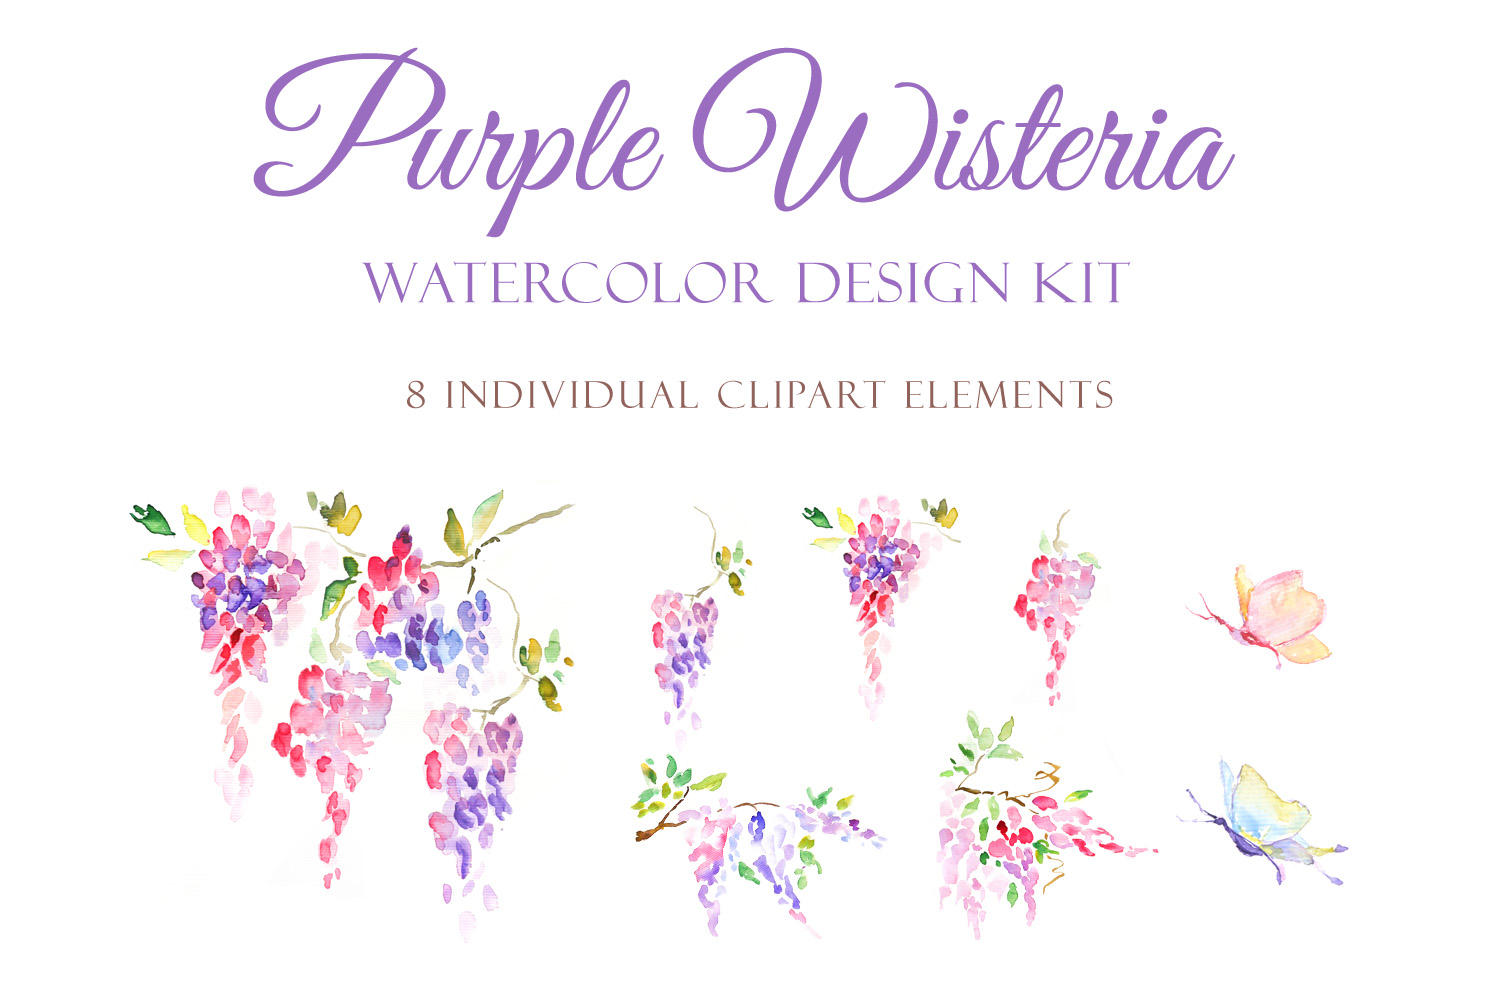 Watercolor Purple Wisteria - Handmade clipart and design kit  example image 3